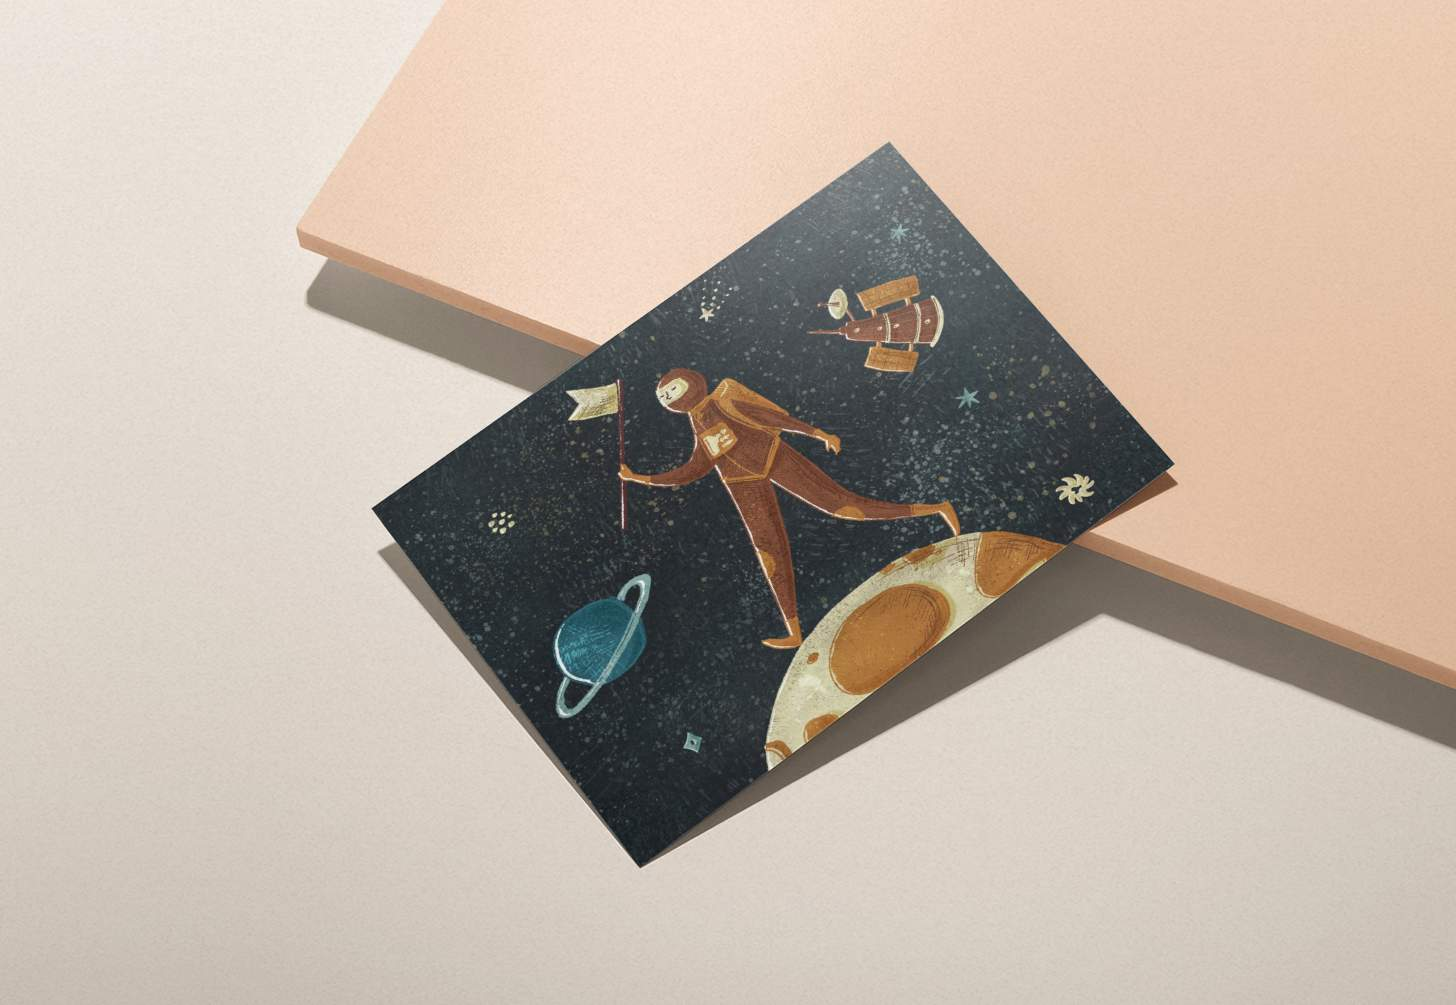 Astronaut on moon design card with pink background